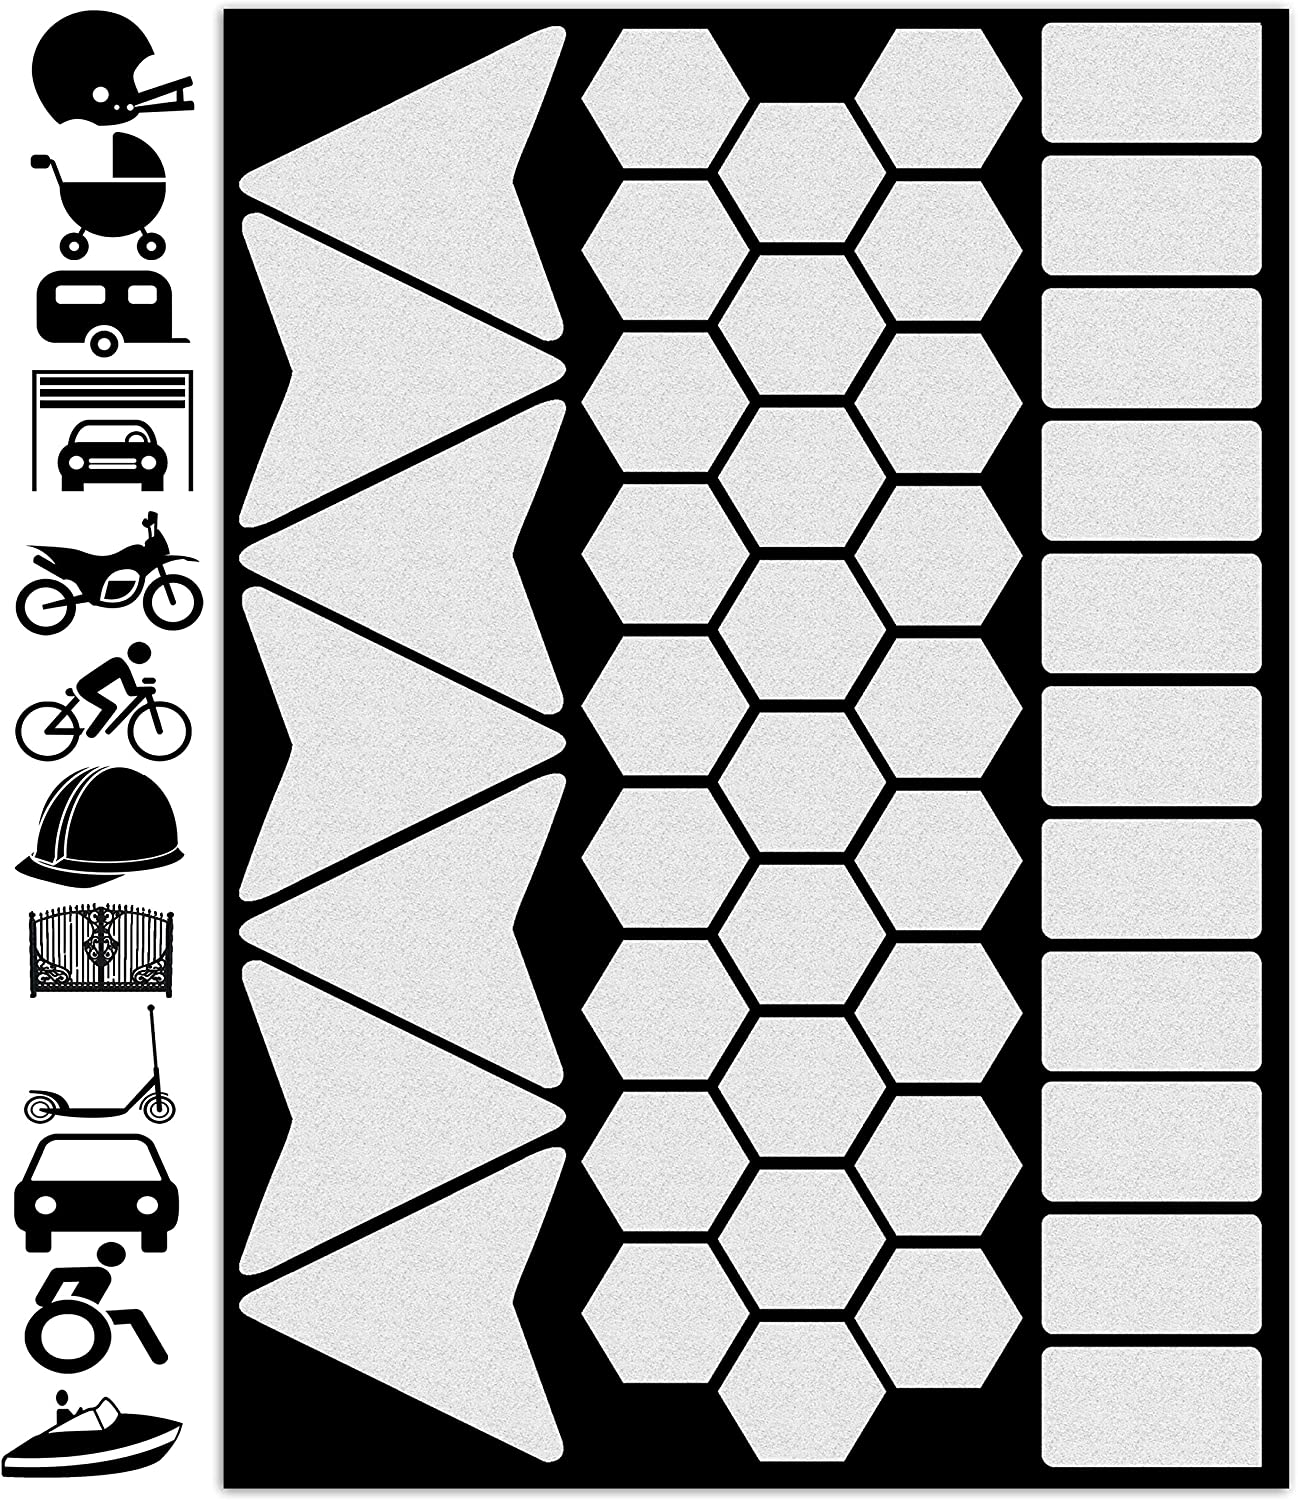 Hexagons Iron-On Reflective Safety Decals Large